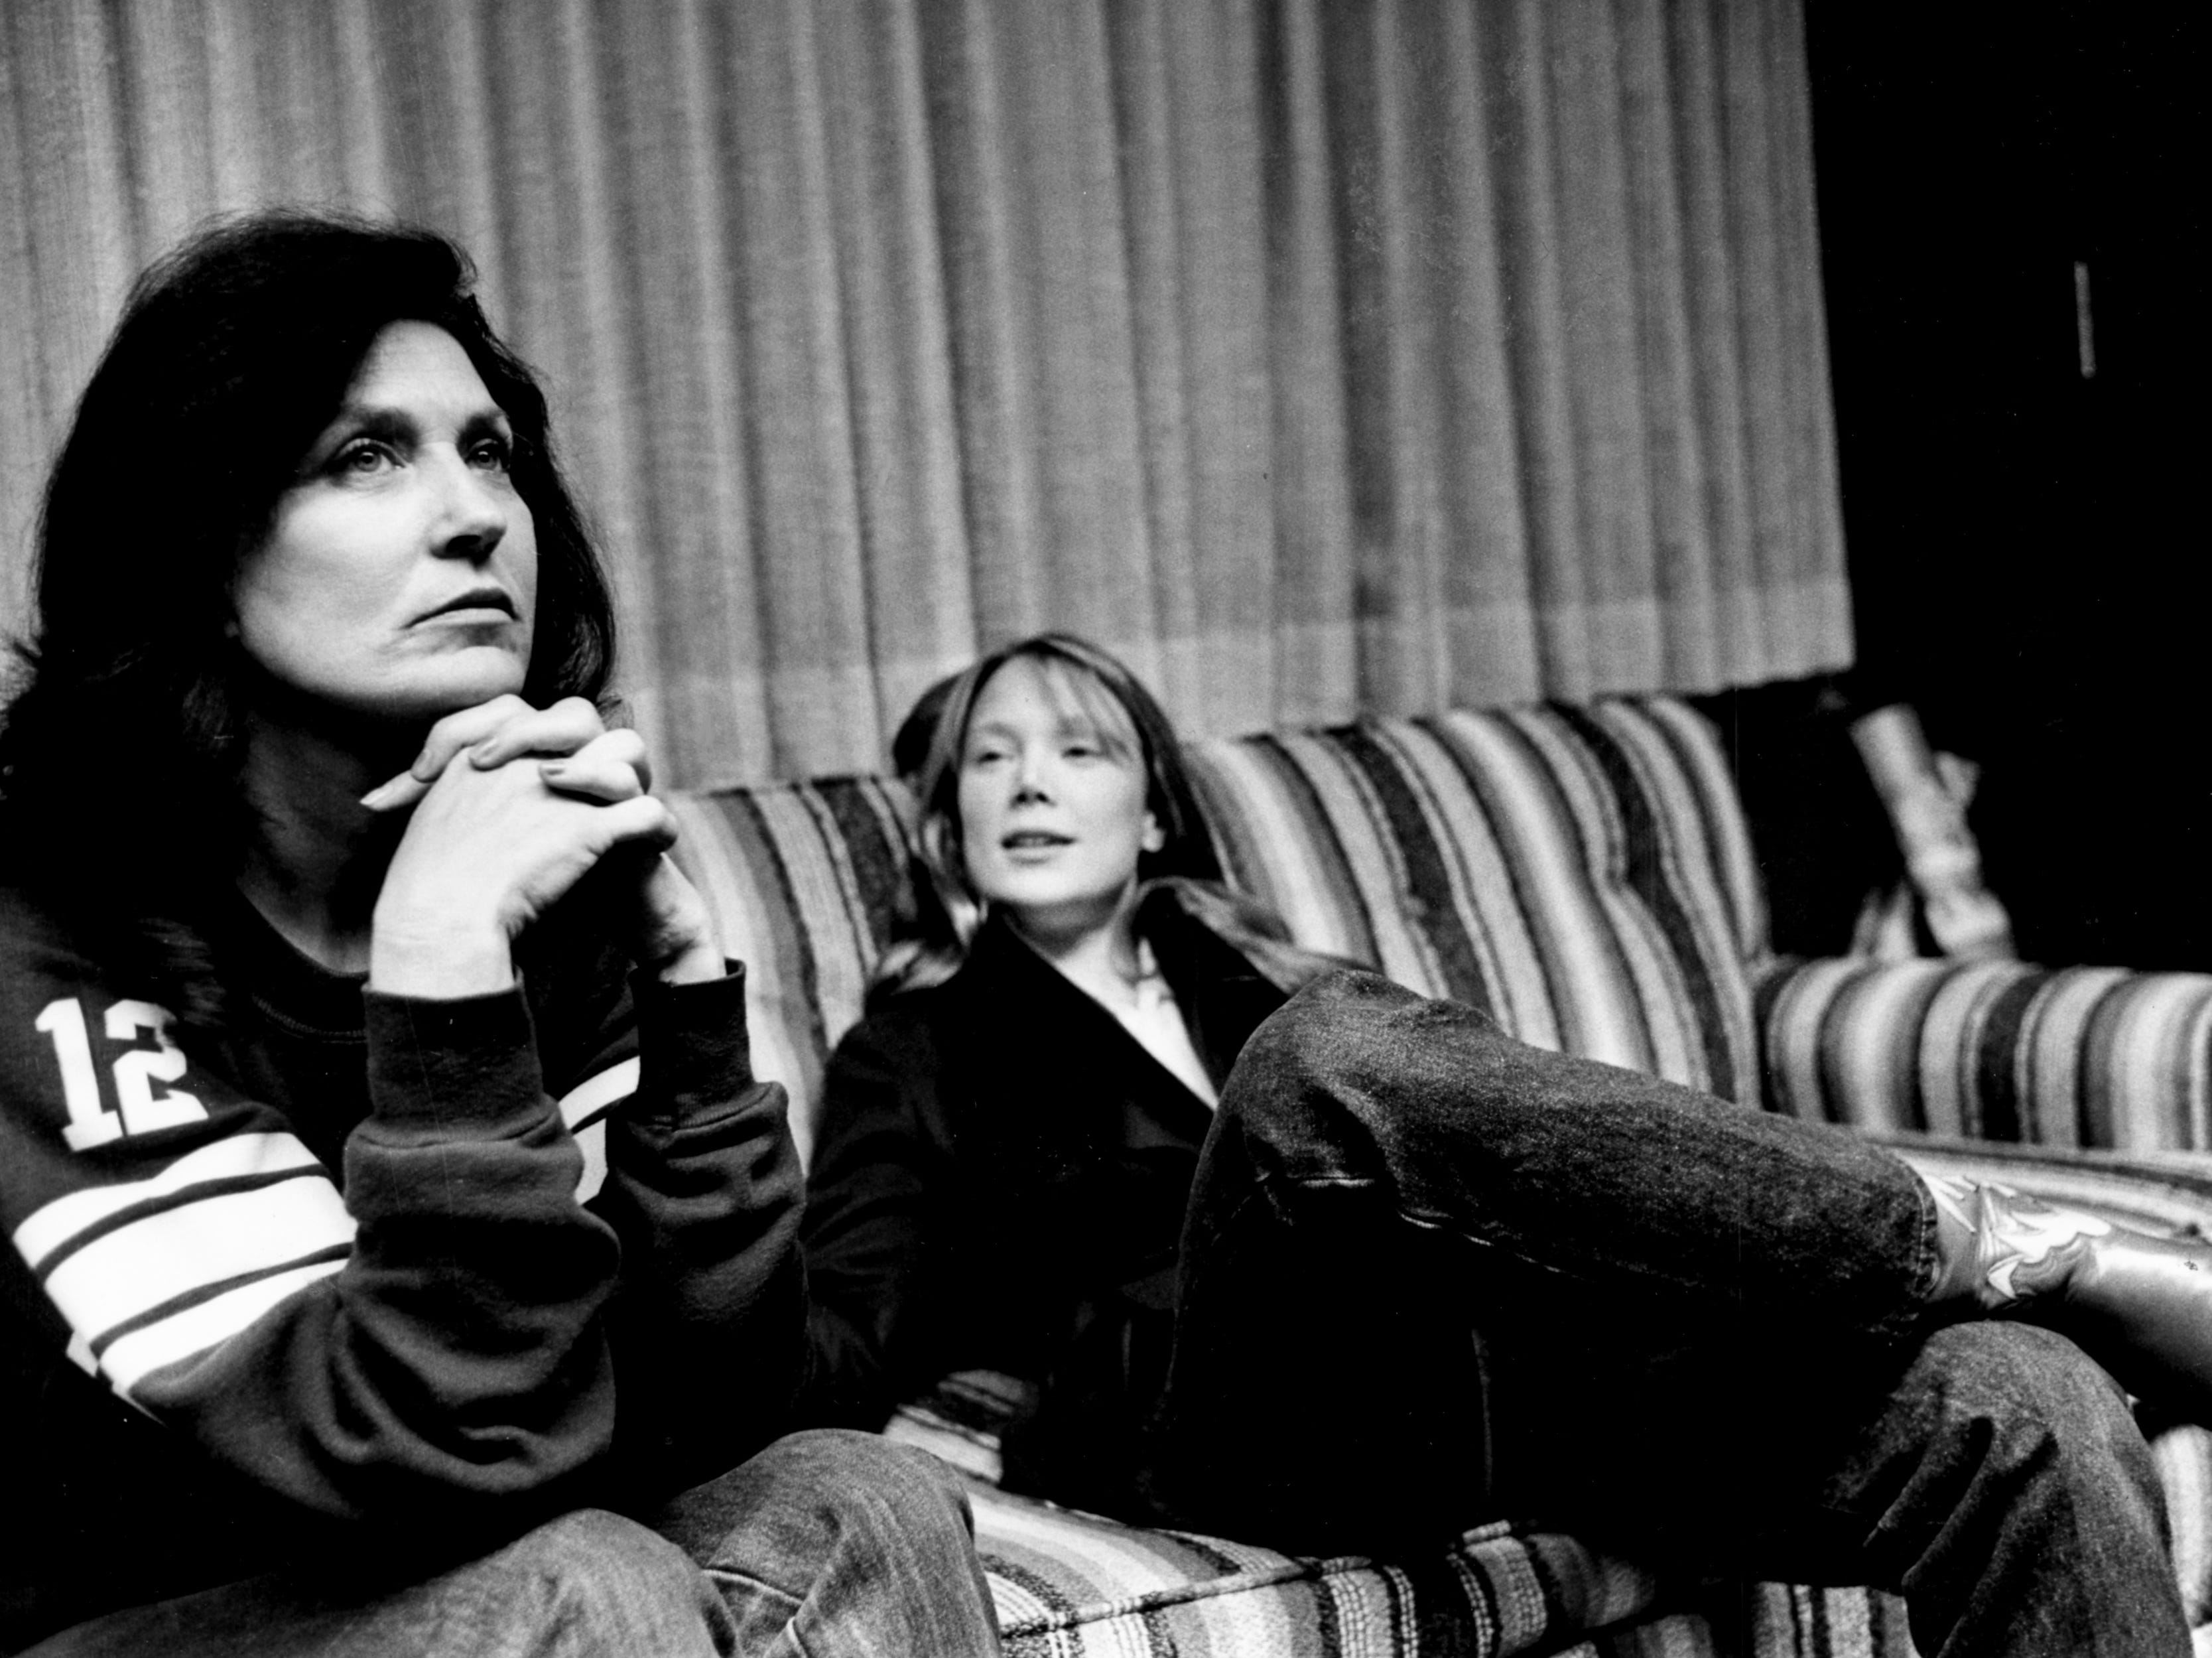 Loretta Lynn, left, and Sissy Spacek enjoy some downtime while discussing the autobiographical film about Lynn's rise to fame in country music March 3, 1979.